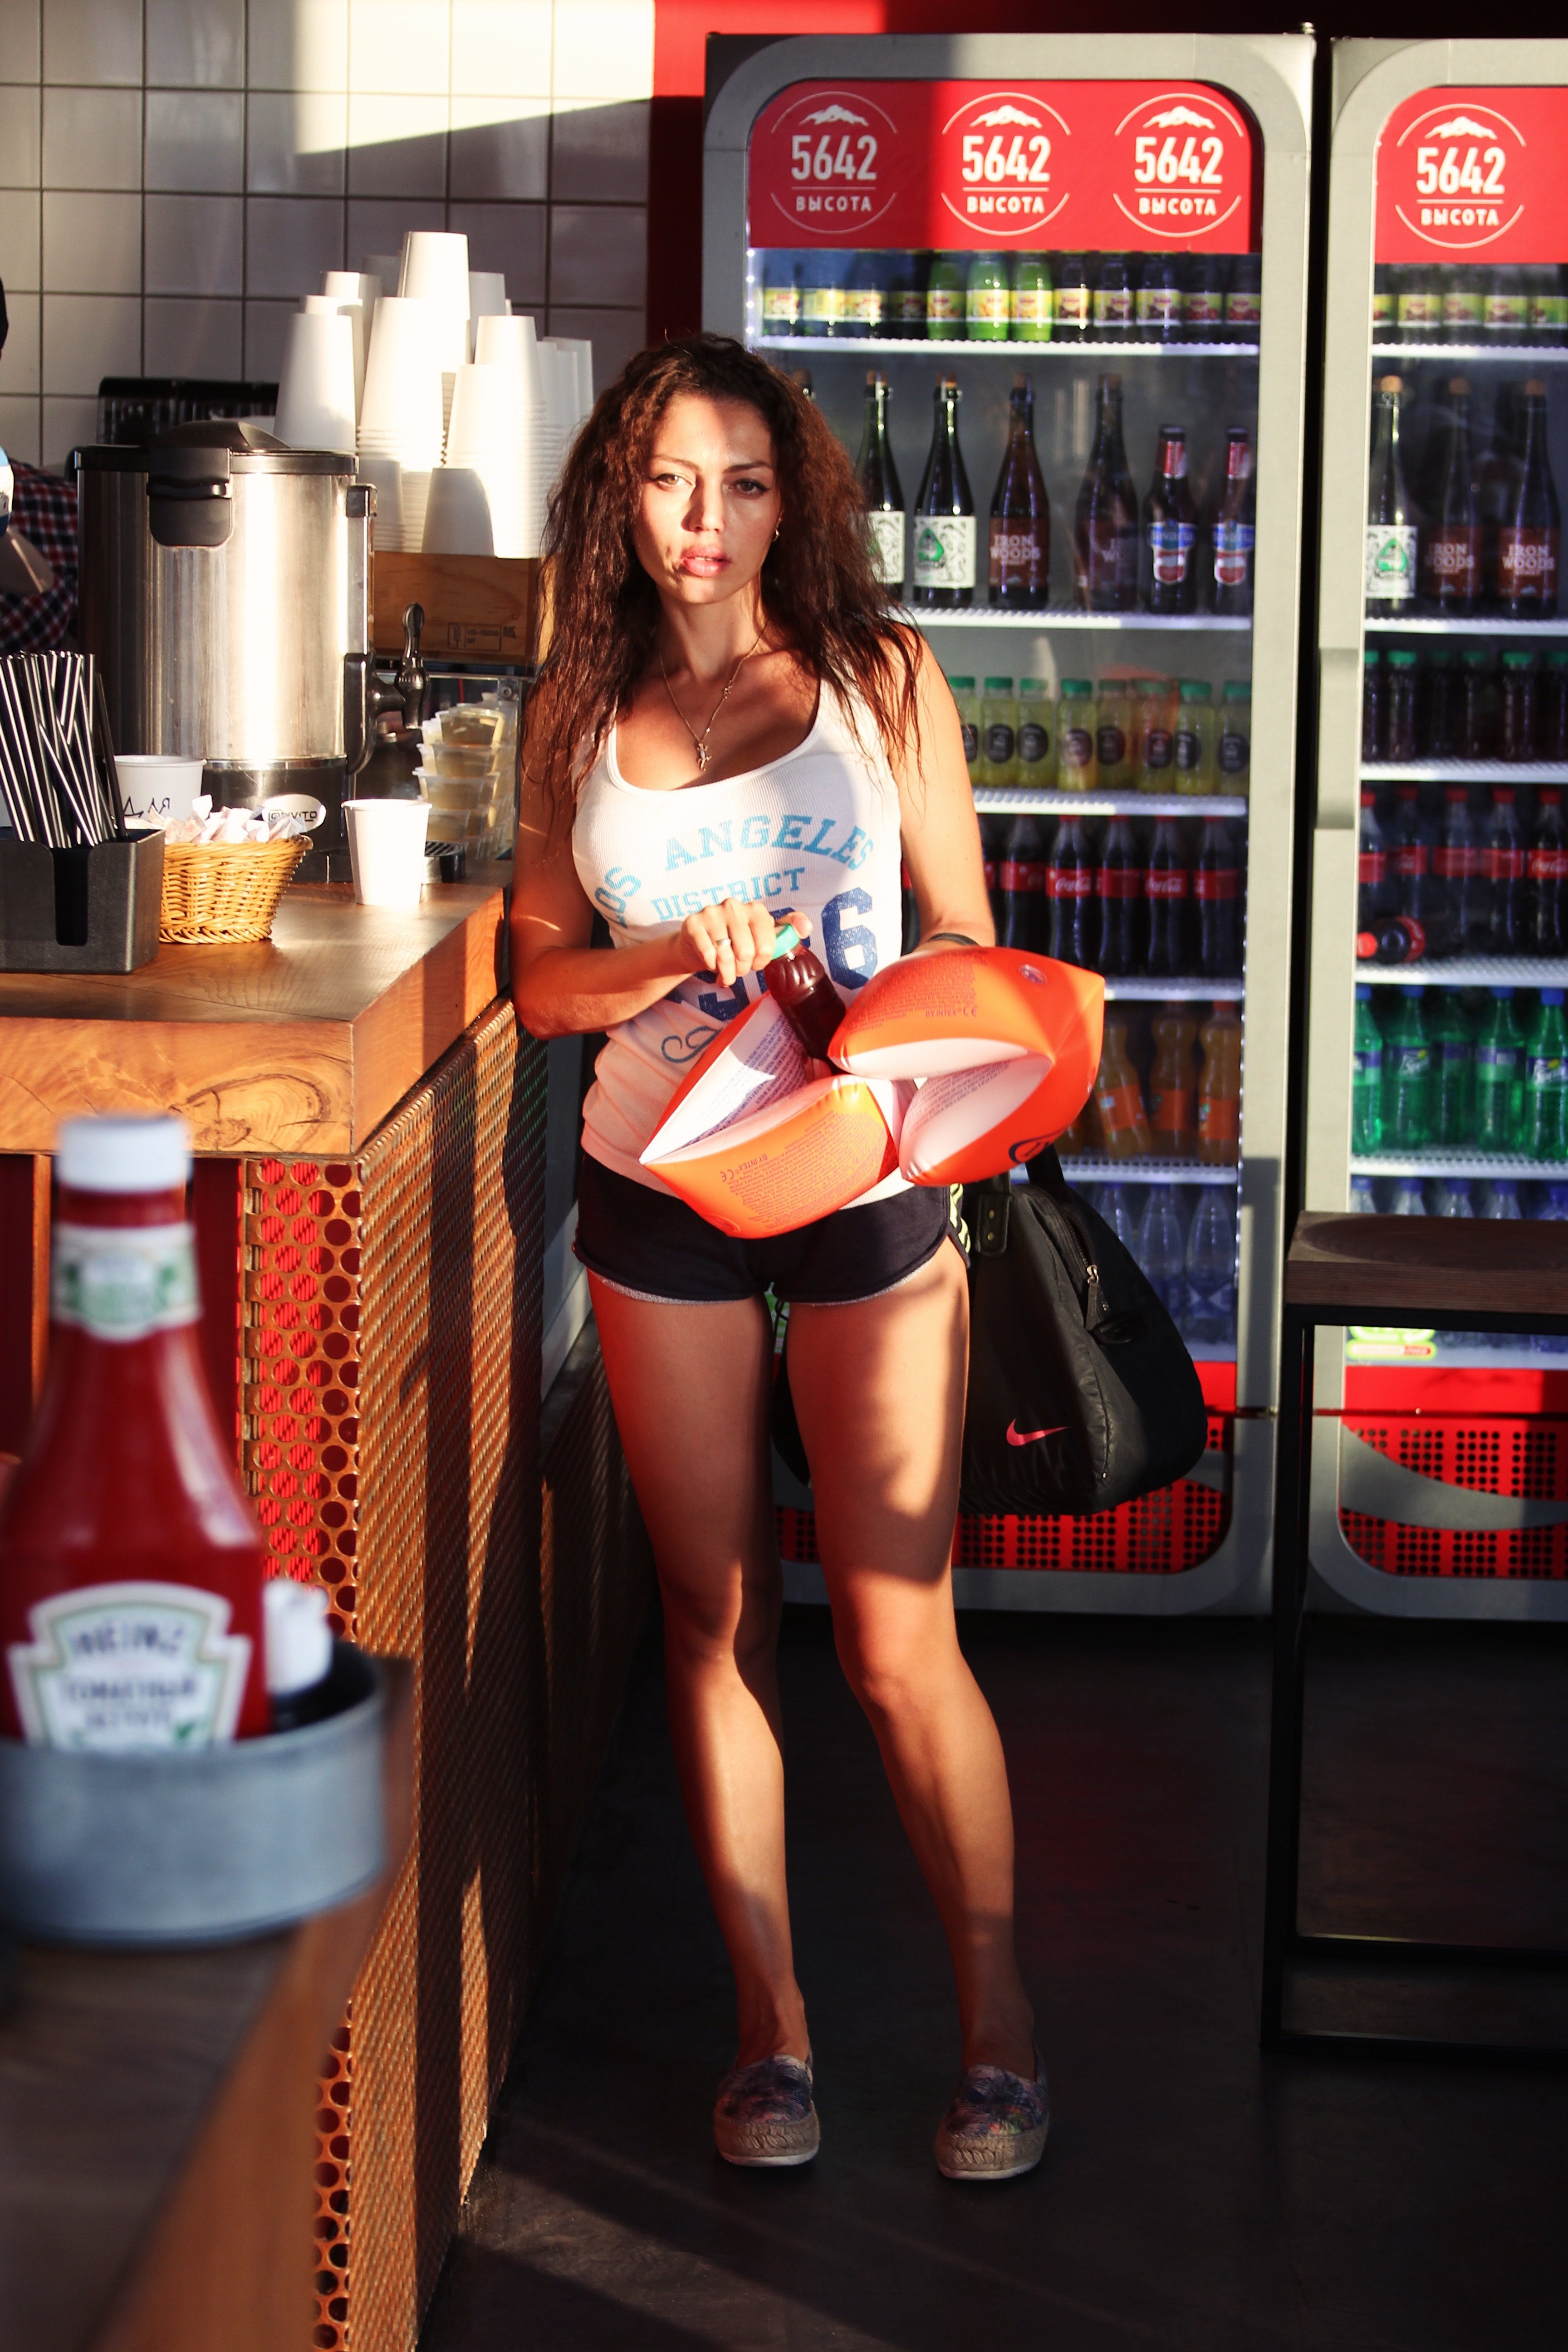 Woman in White and Blue Tank Top, Adult, Ketchup, Woman, Wear, HQ Photo